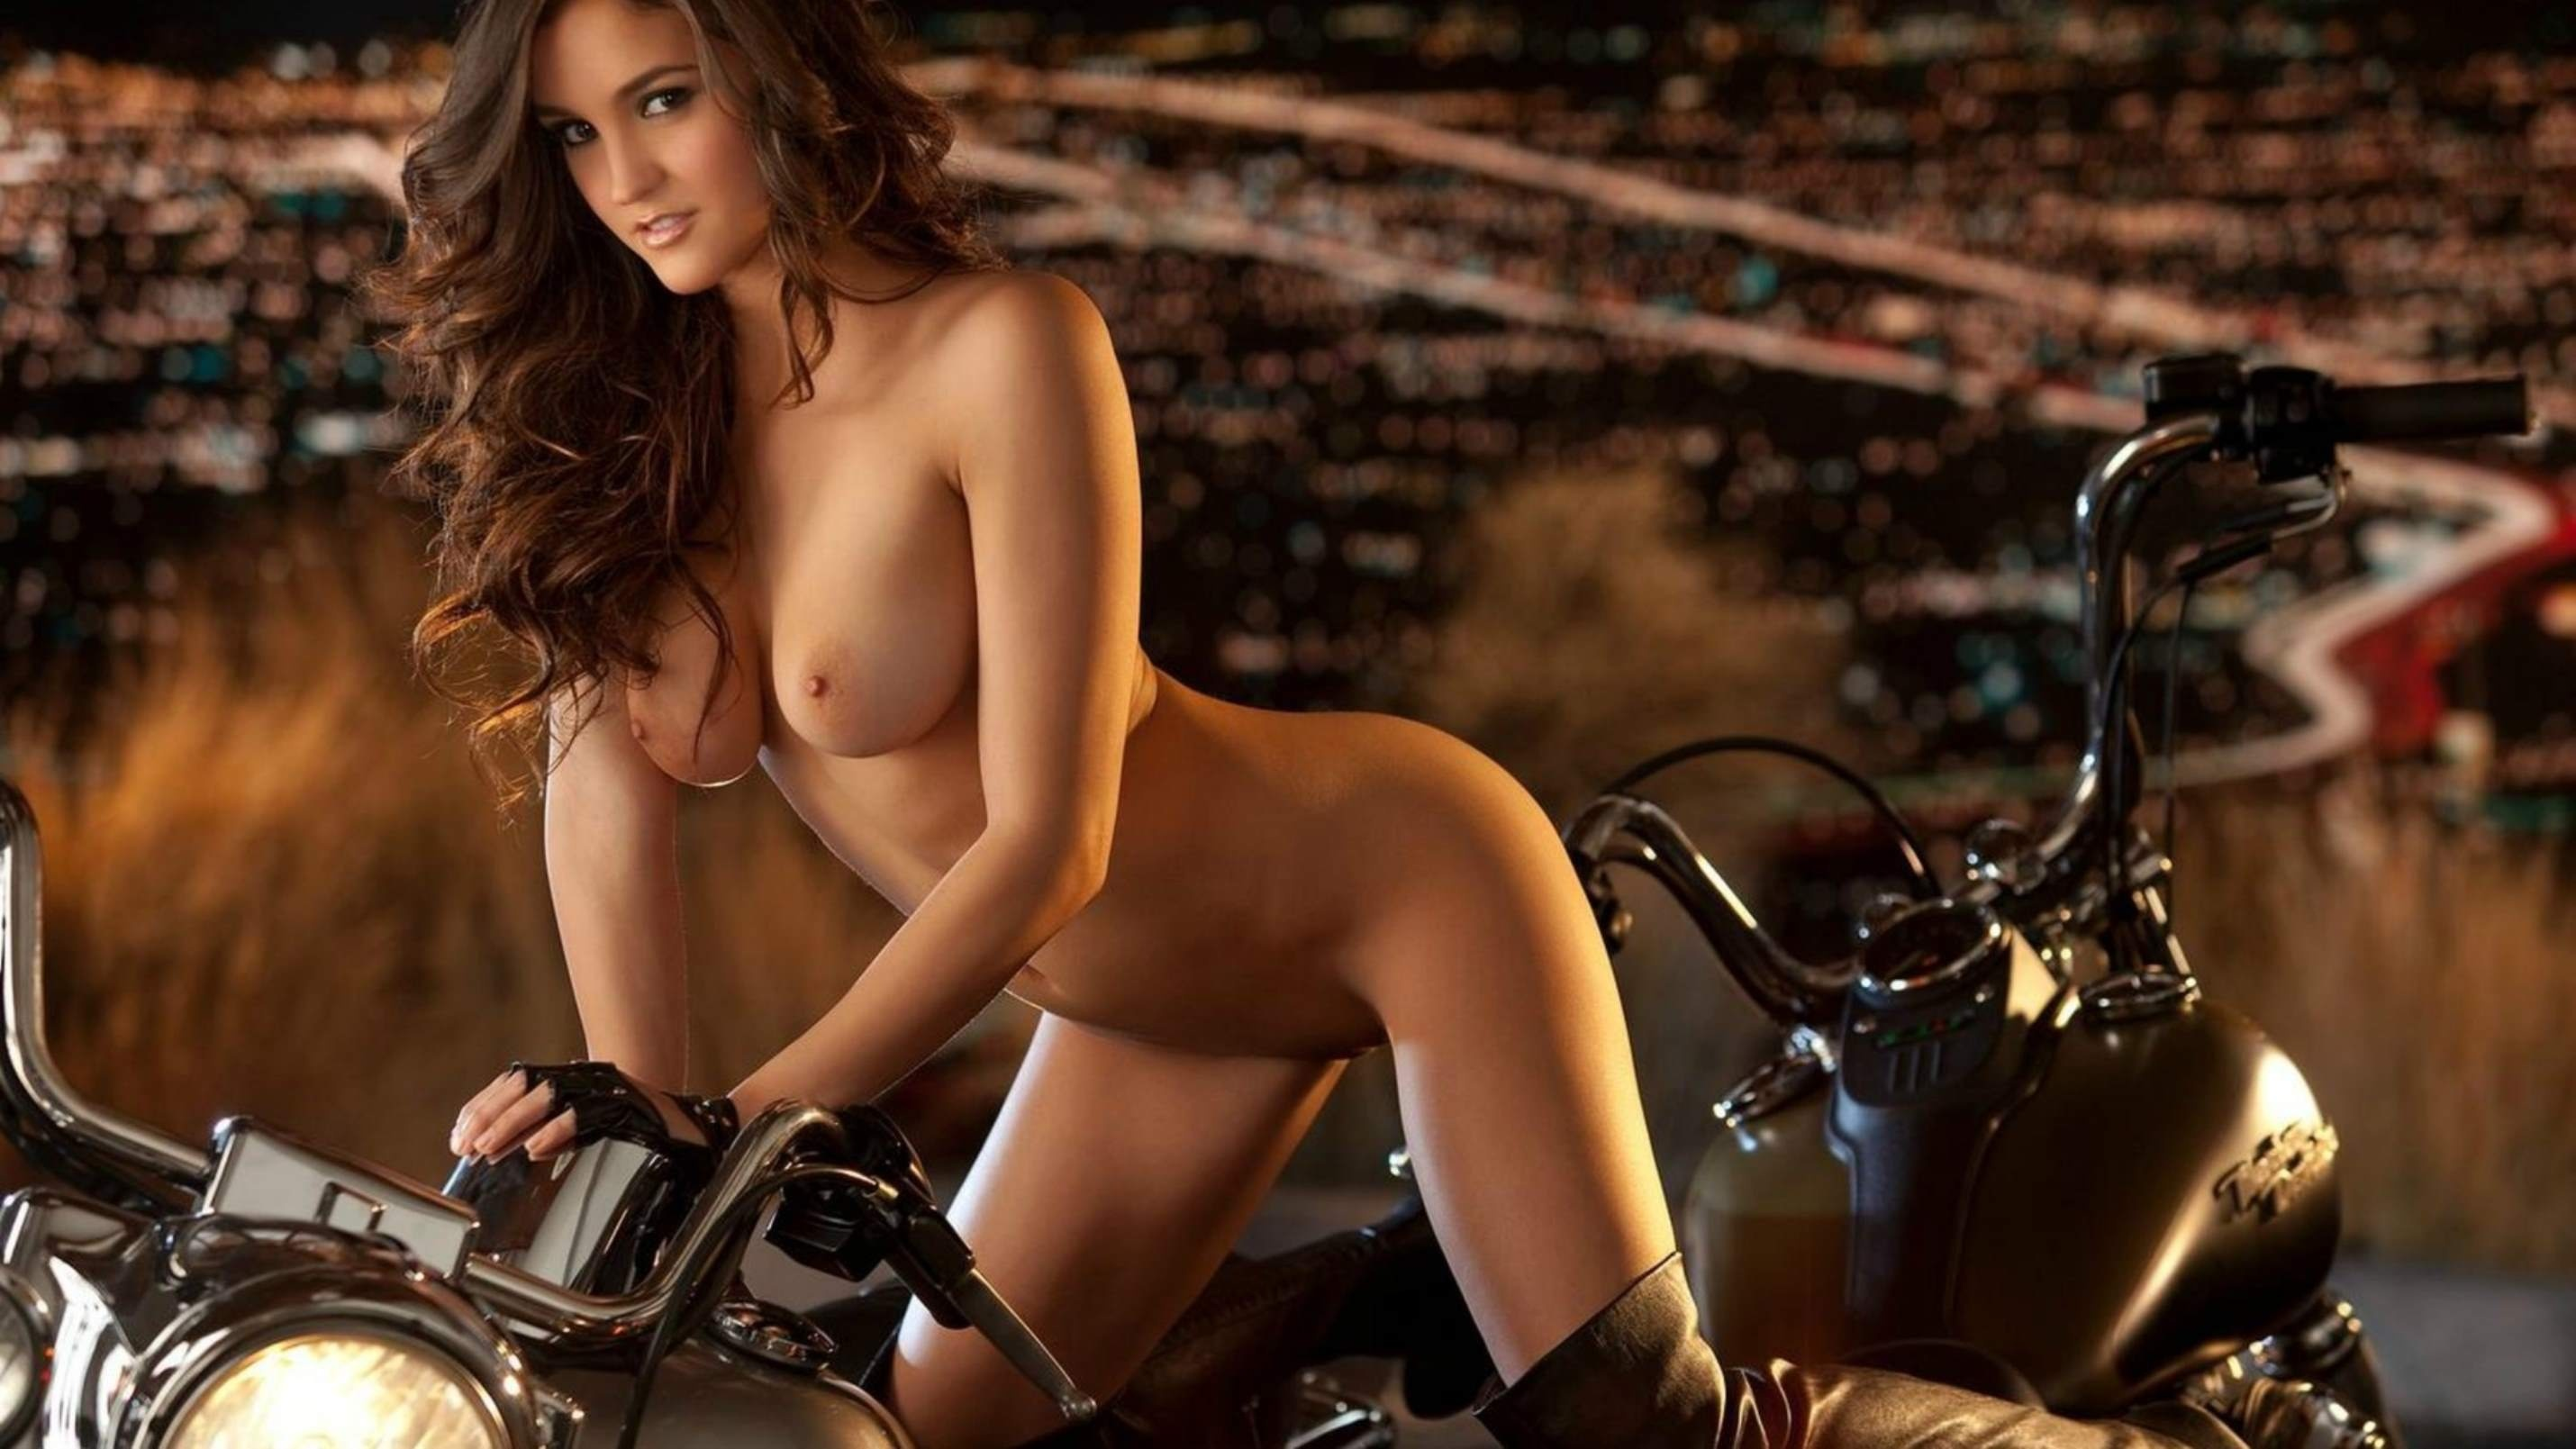 Naked girl motorcycle pictures, only madure dixit gets naked fucked in porn hub